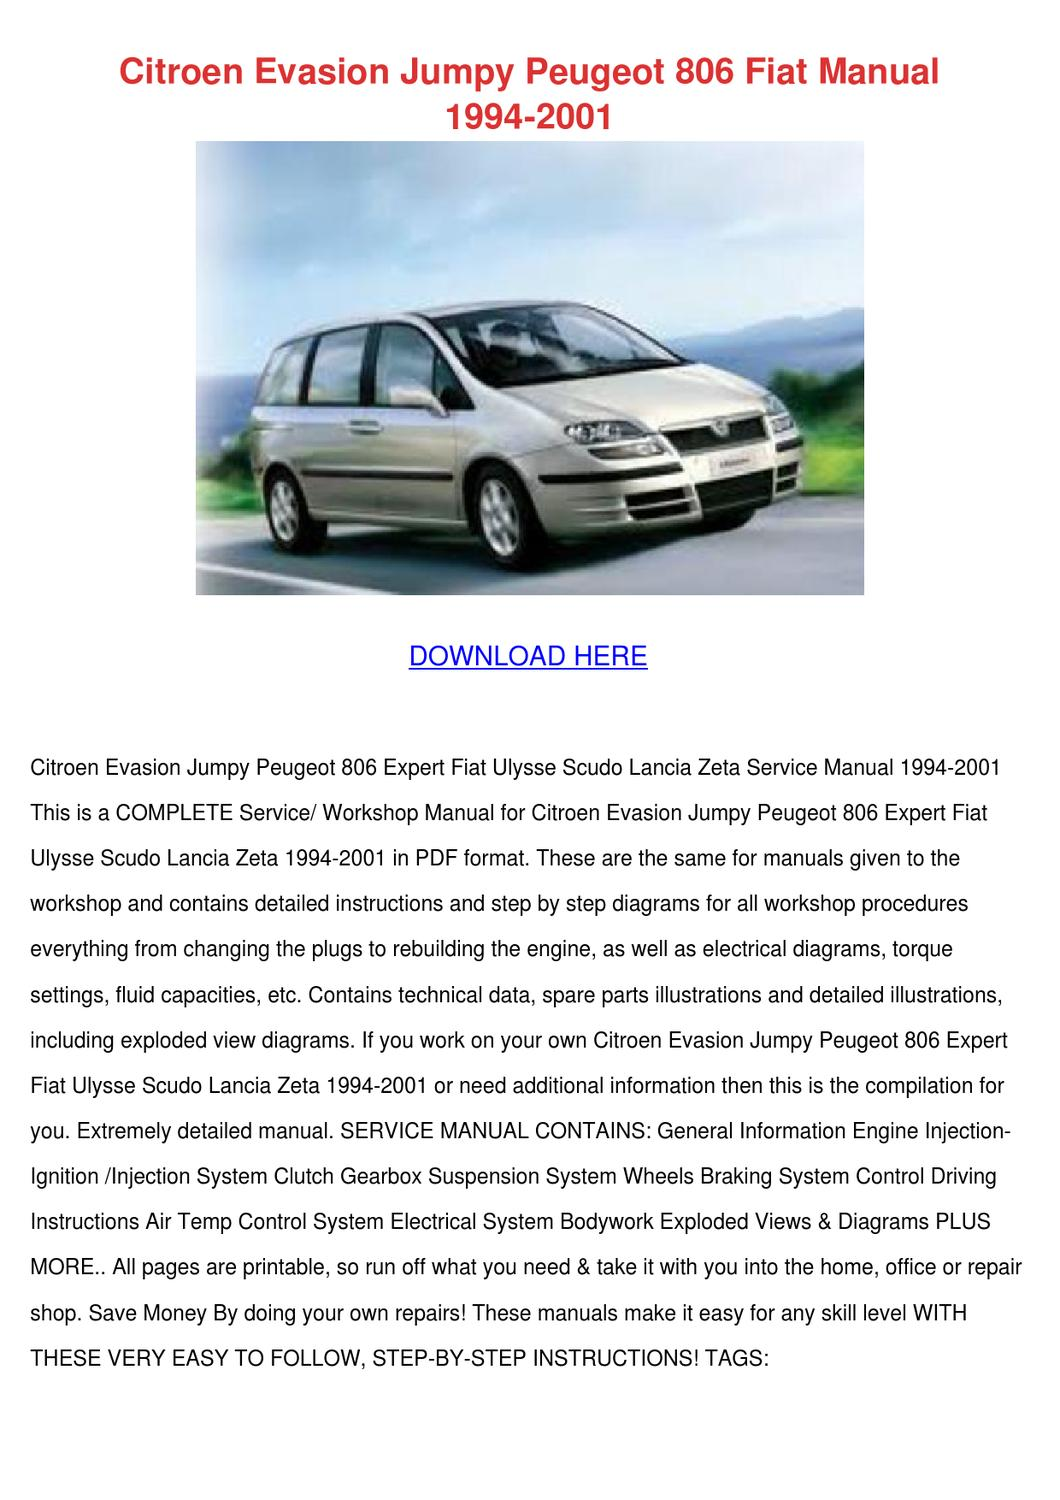 Citroen Evasion Jumpy Peugeot 806 Fiat Manual By Aaronware